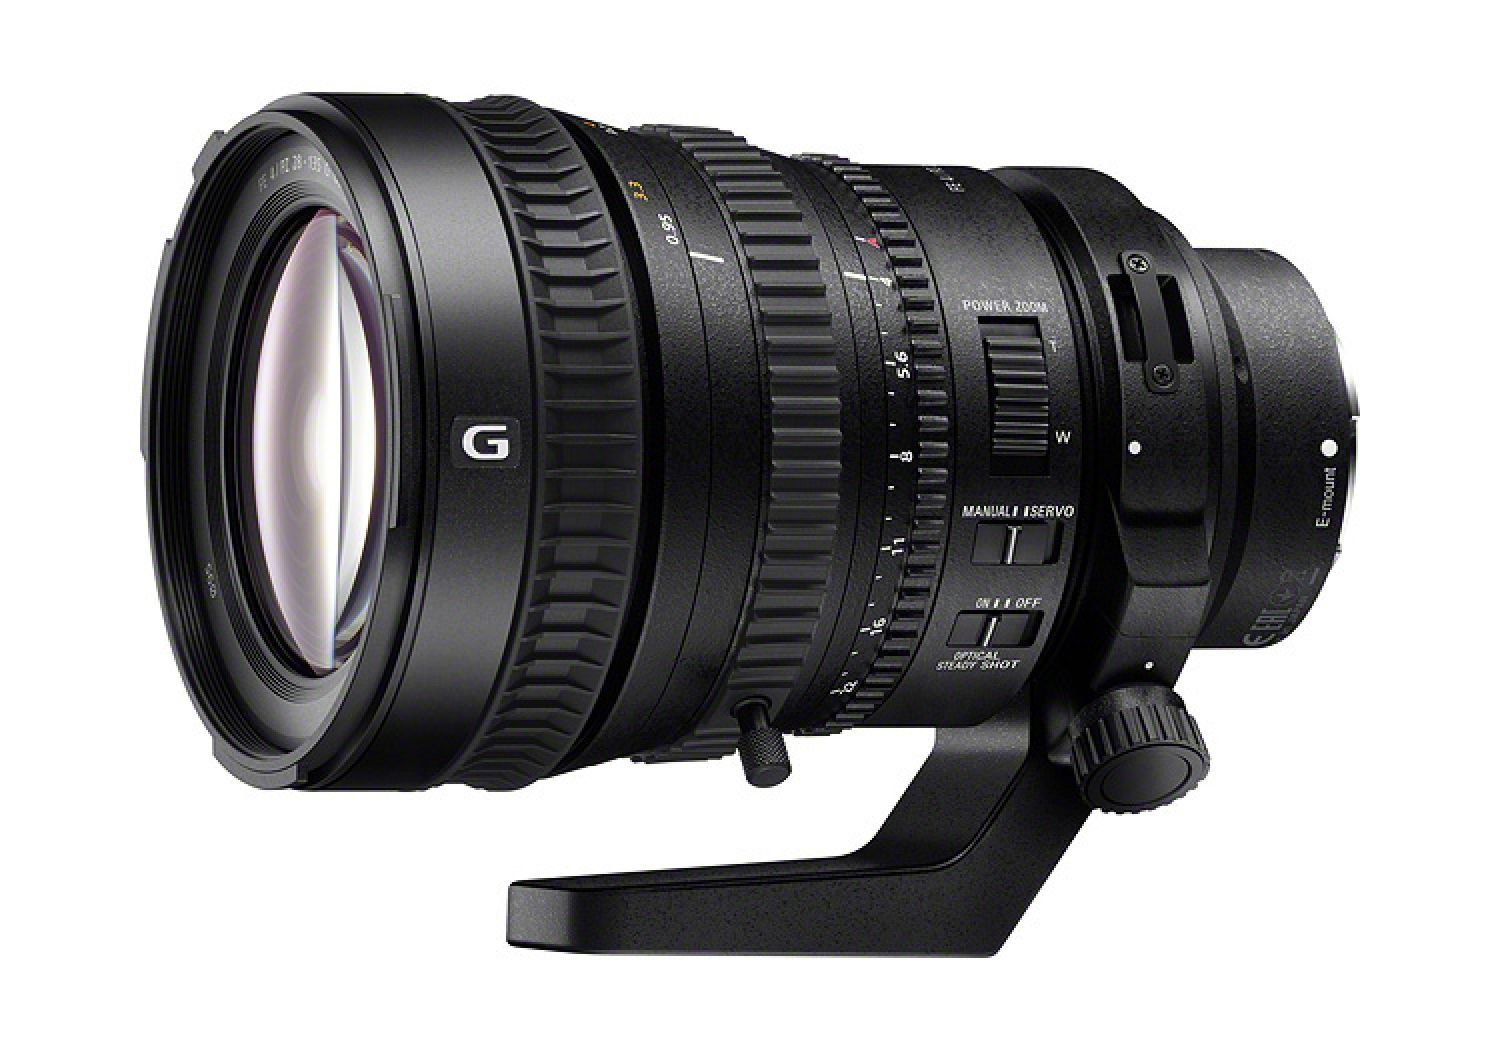 Sony Introduces Full-Frame Power Zoom 28-135mm f/4 Lens